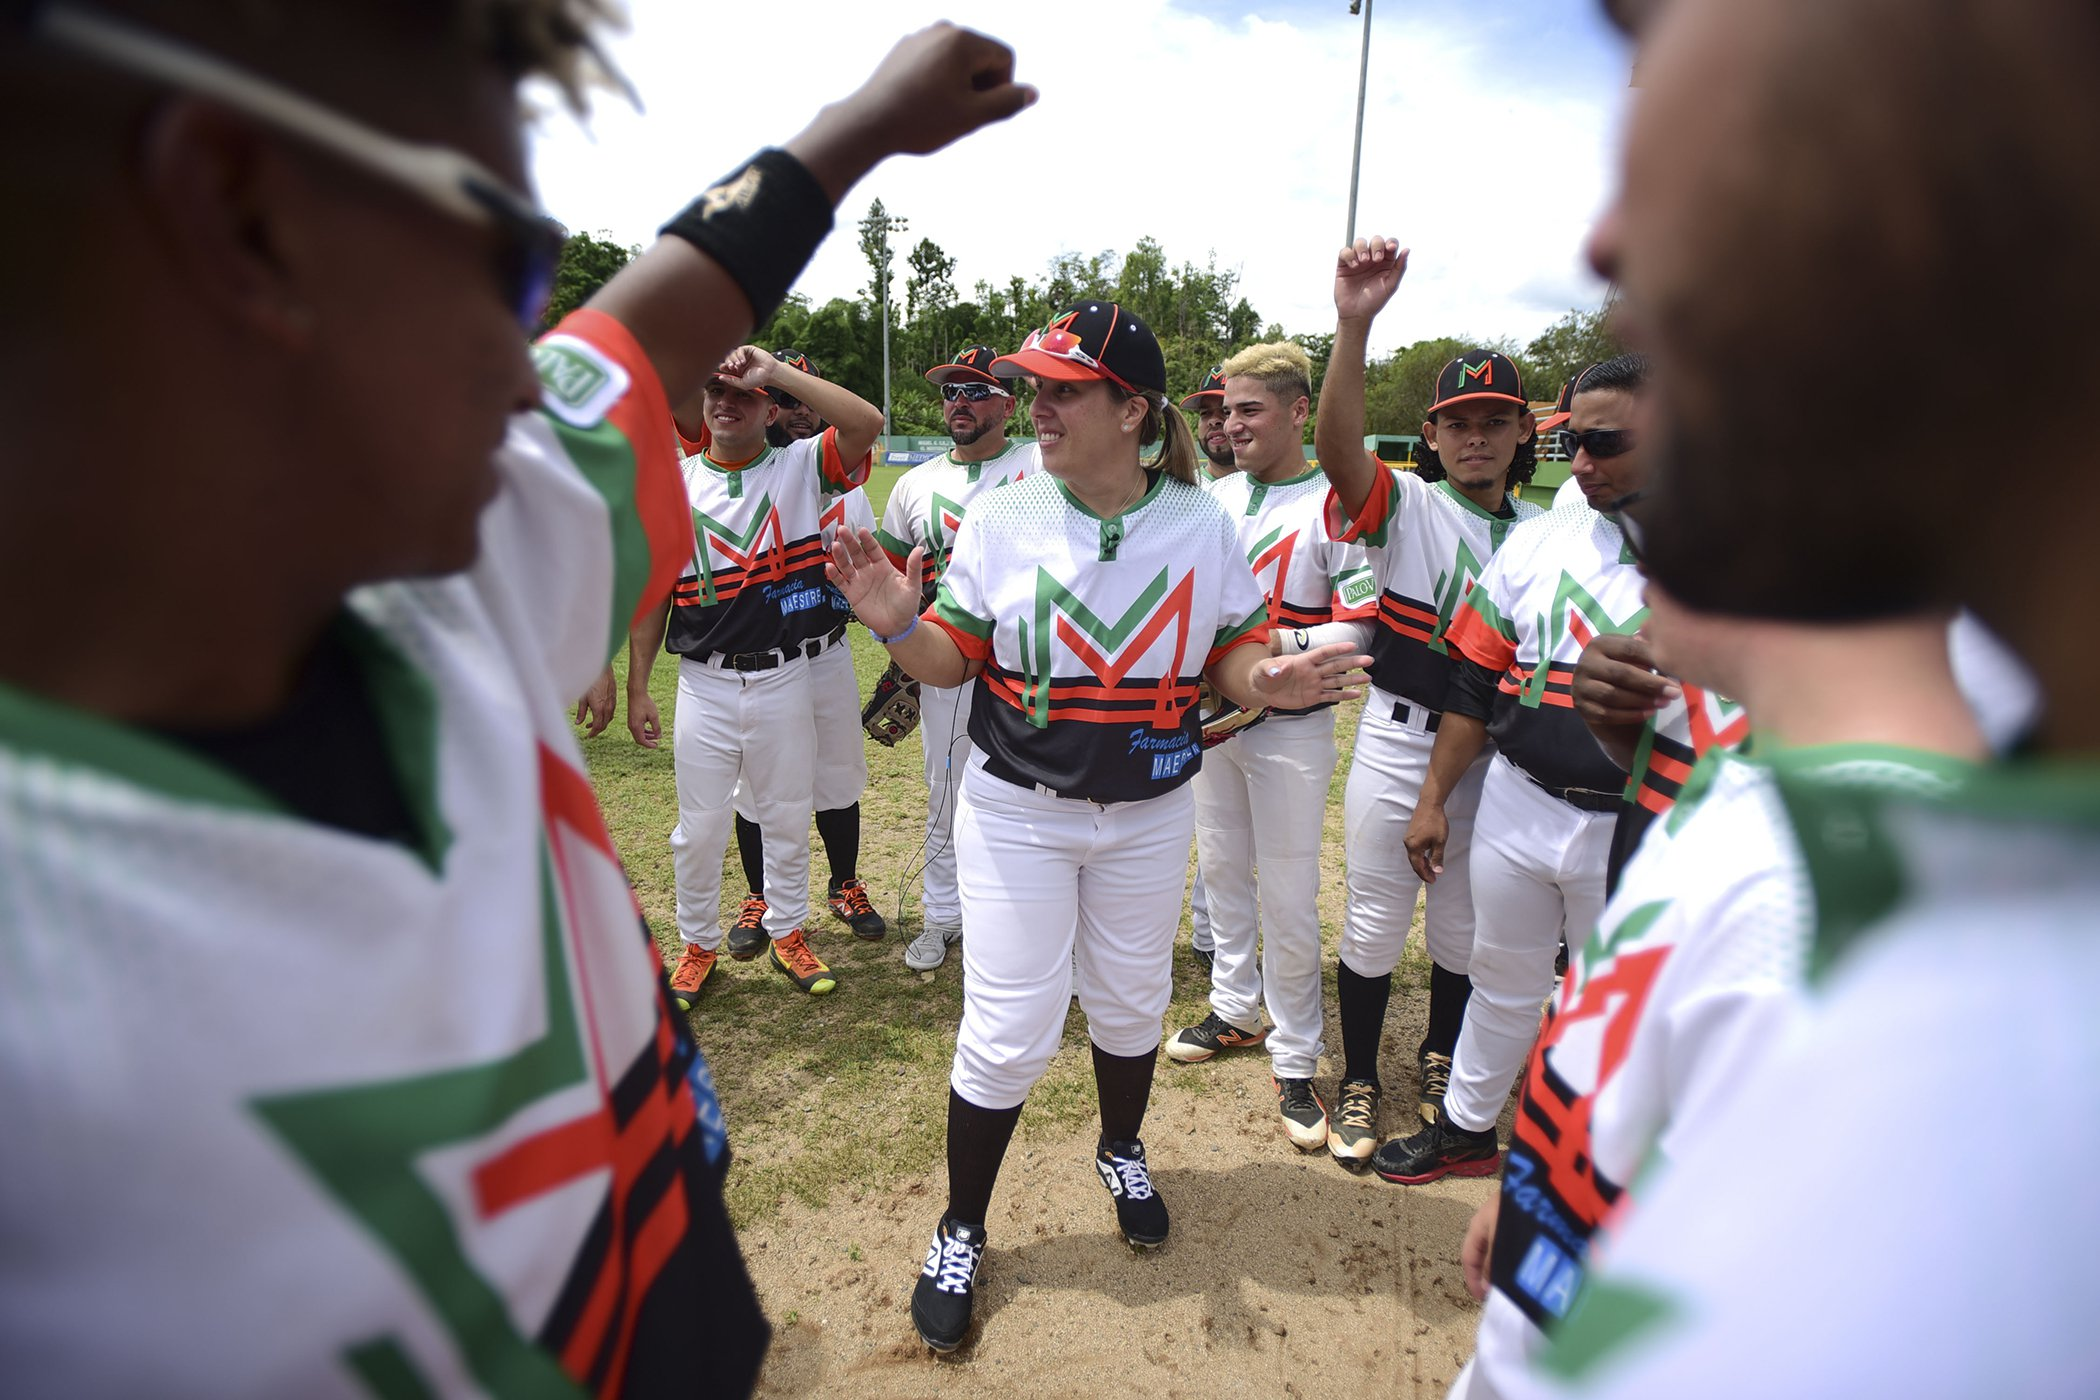 Female-Baseball-Player-Puerto-Rico.jpg